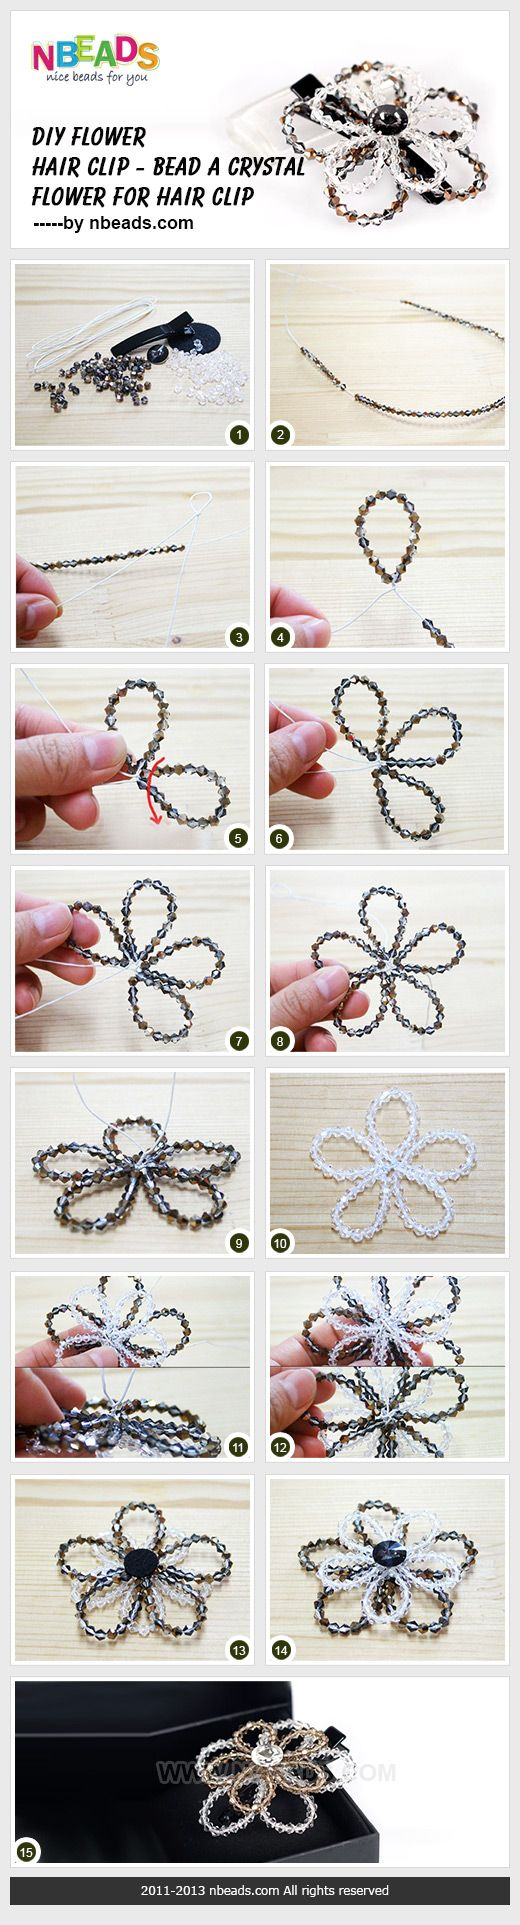 diy flower hair clip - bead a crystal flower for hair clip